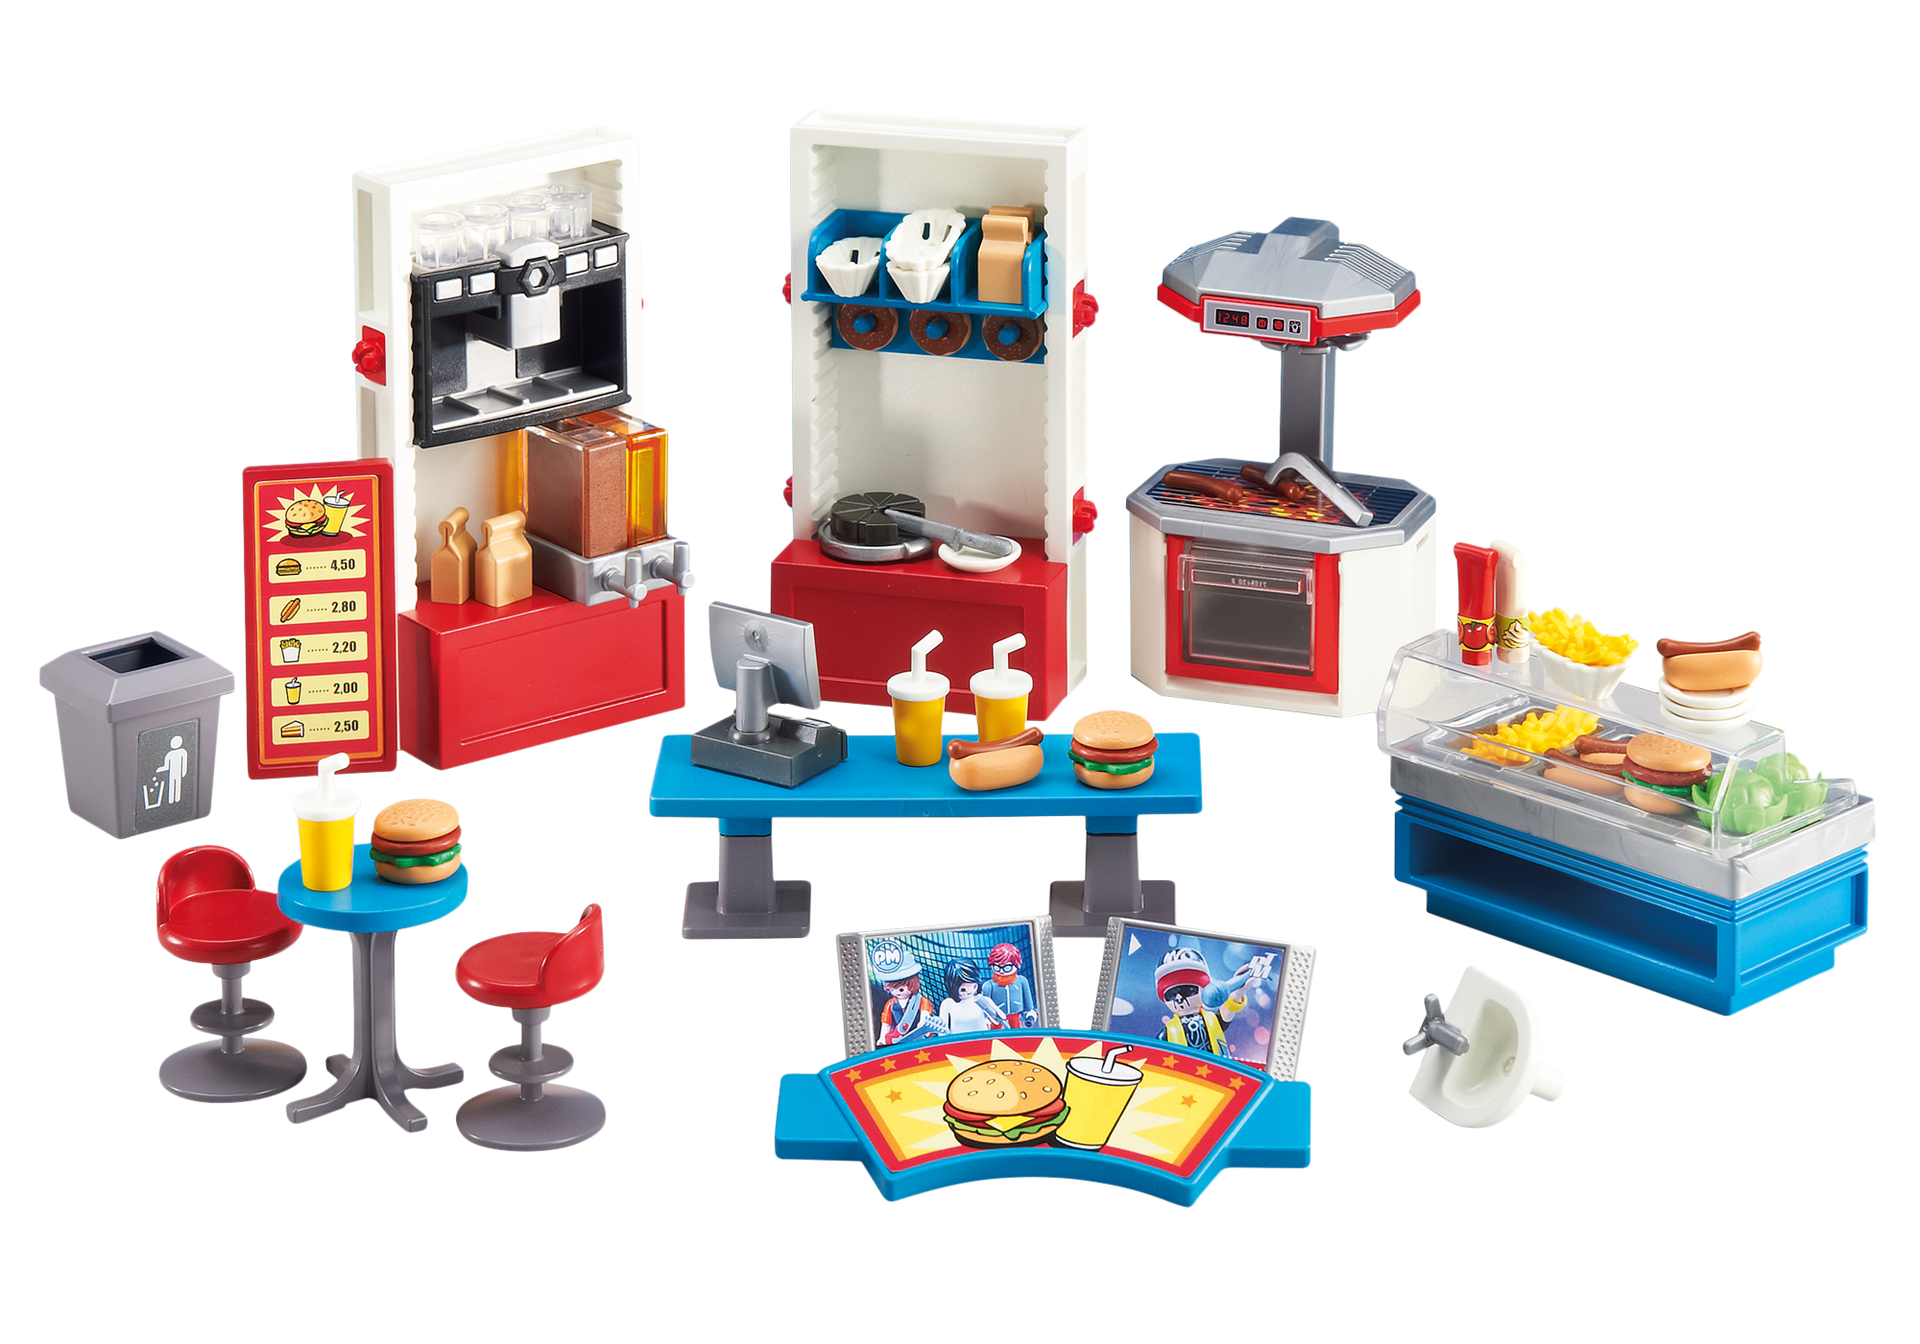 Fast food restaurant 6441 playmobil united kingdom - Toutes les maisons playmobil ...